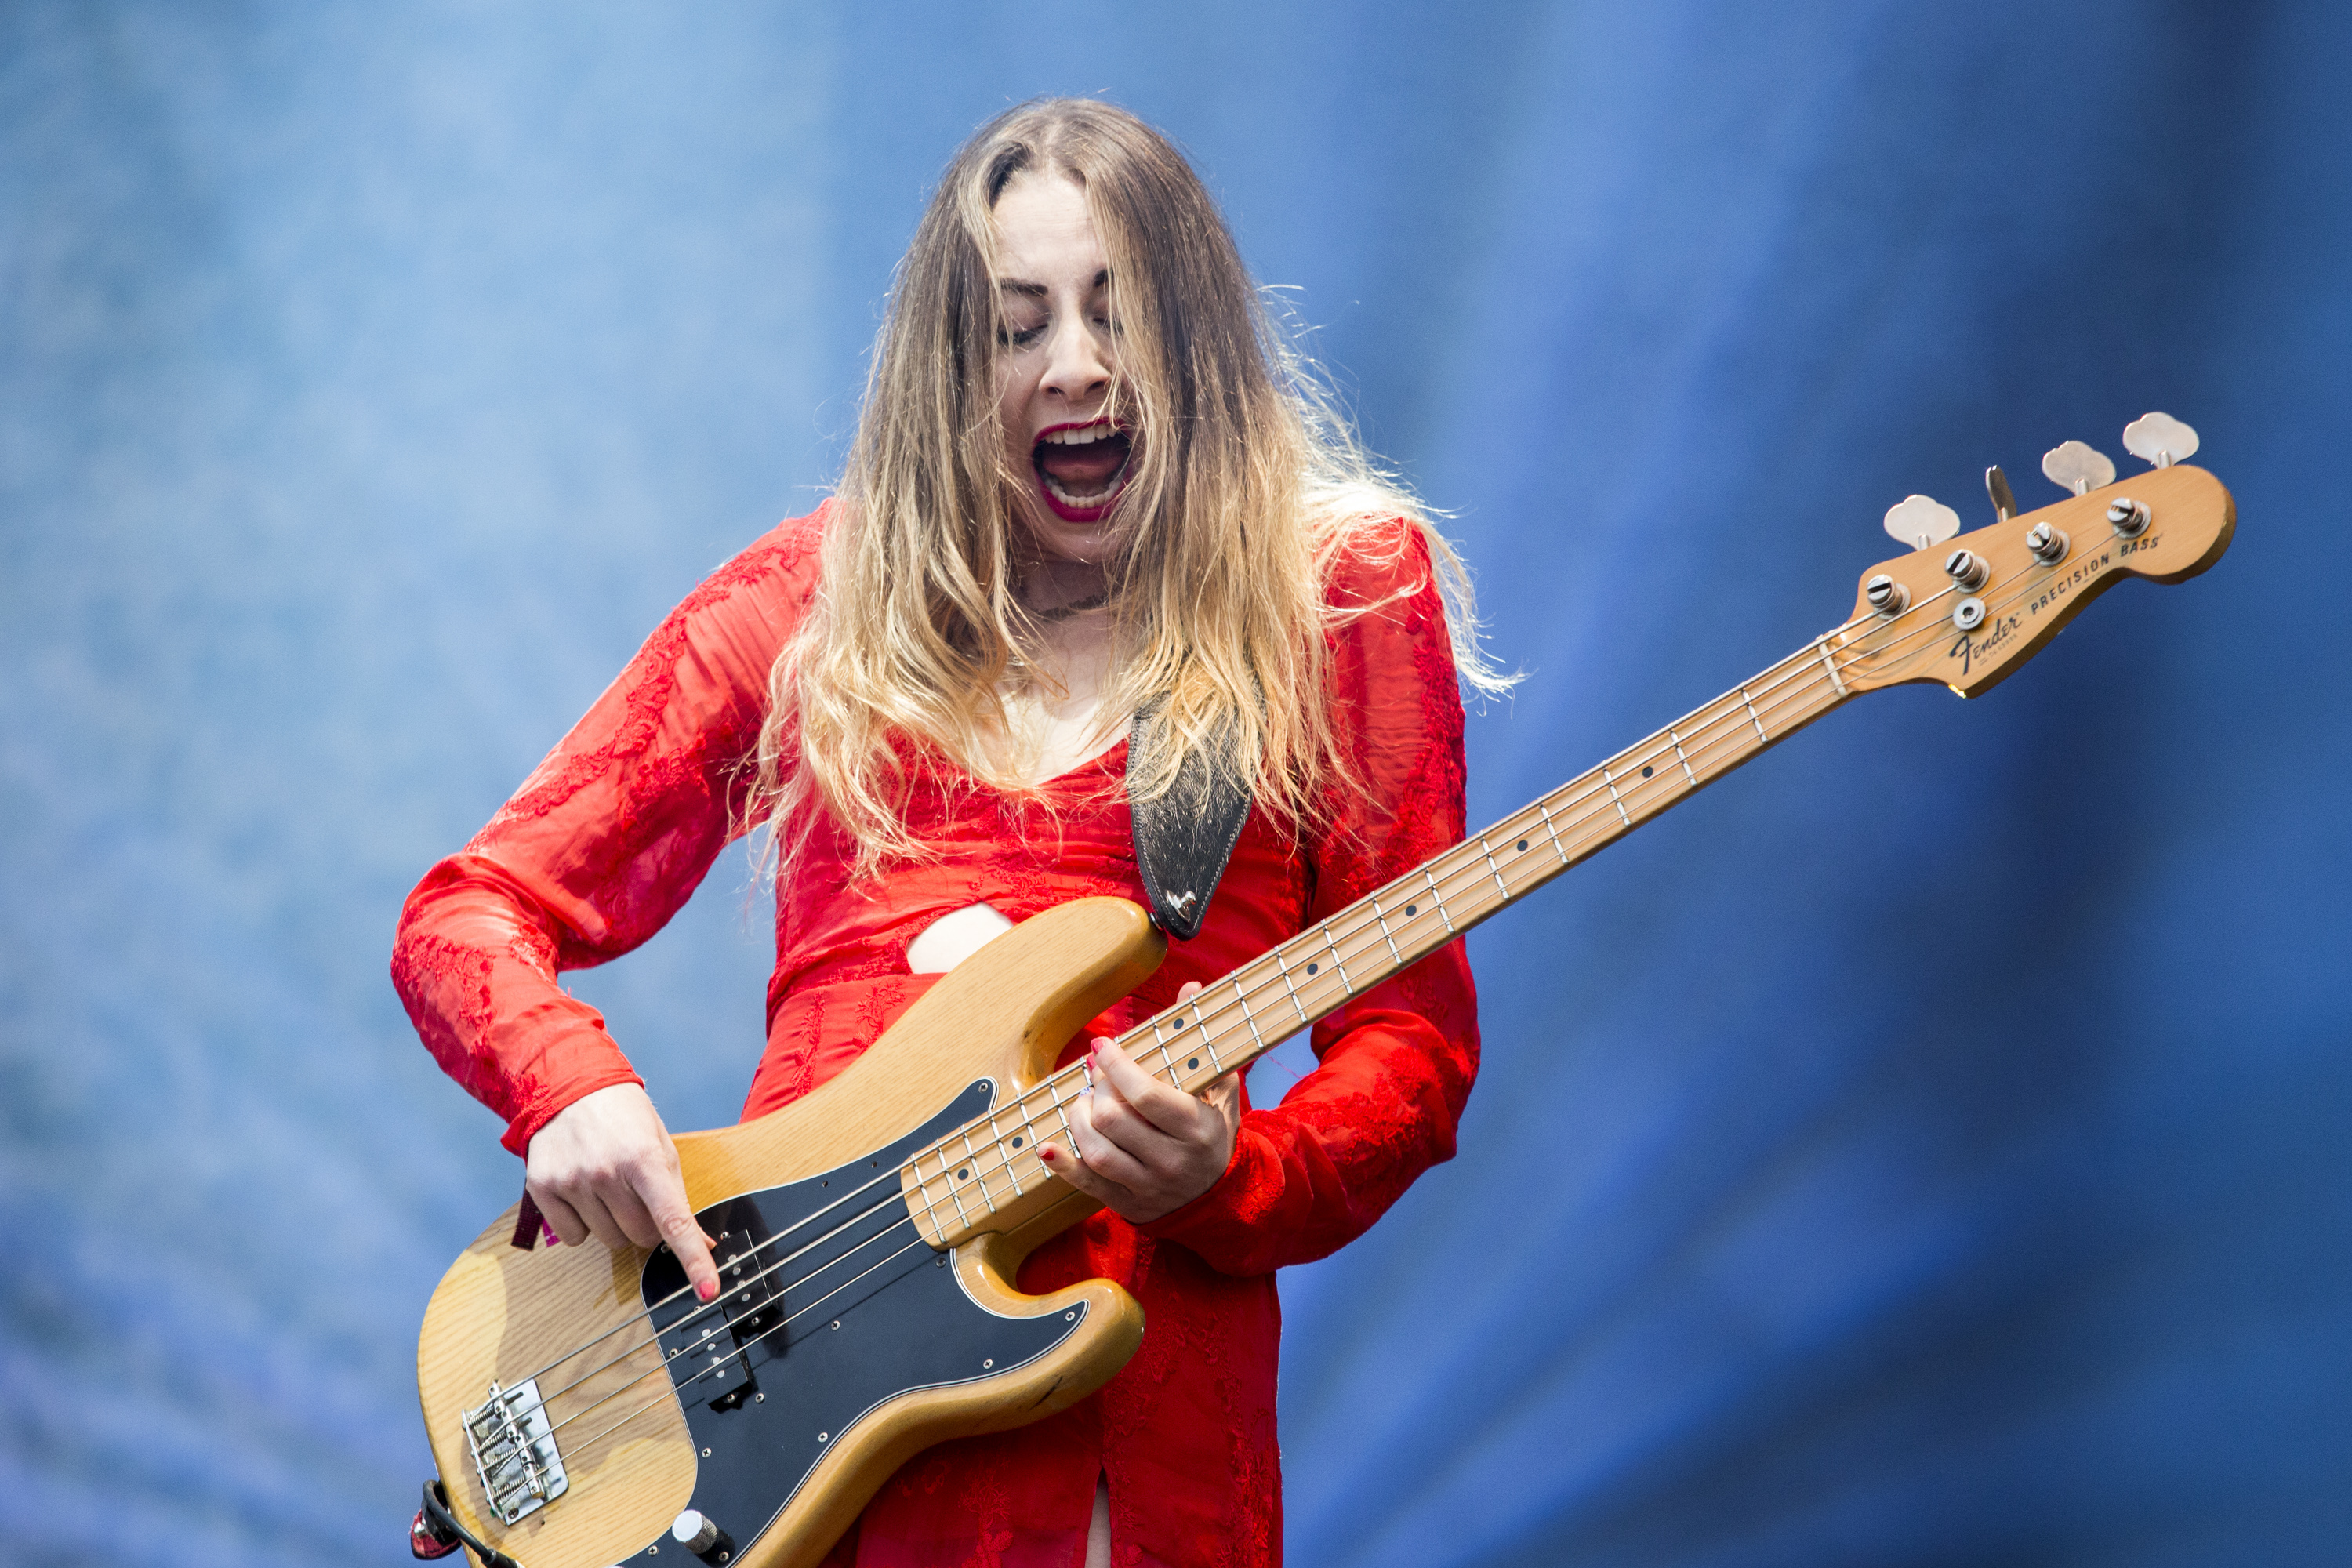 BARCELONA, SPAIN - MAY 30: Este Haim of HAIM performs on stage on day 3 of Primavera Sound 2014 on May 30, 2014 in Barcelona,